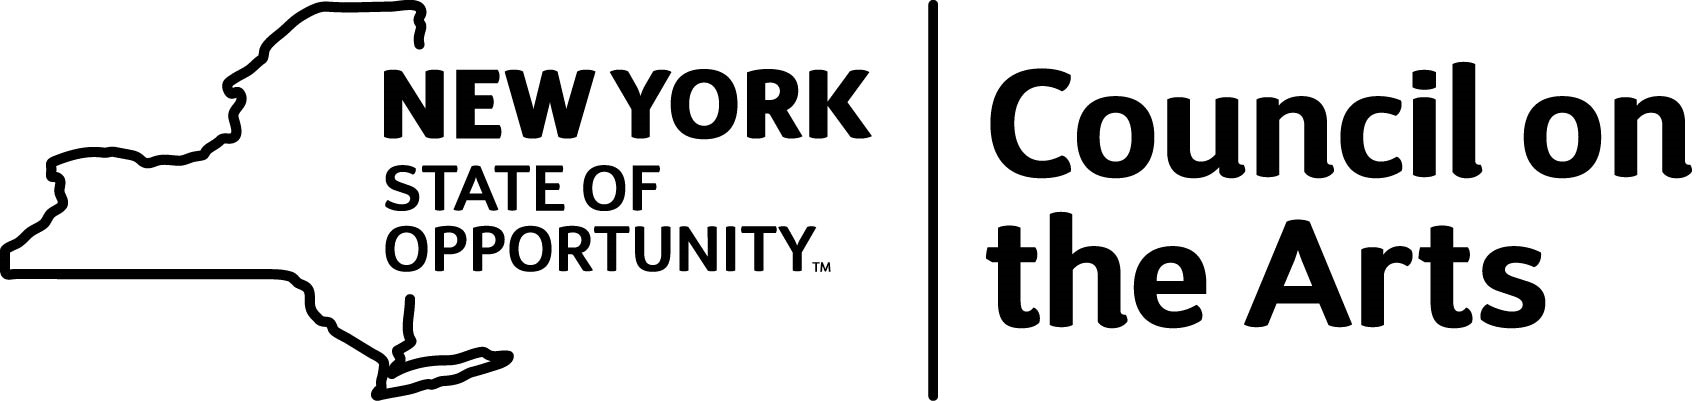 Productions are made possible by the New York State Council on the Arts with the support of Governor Andrew M. Cuomo and the New York State Legislature.